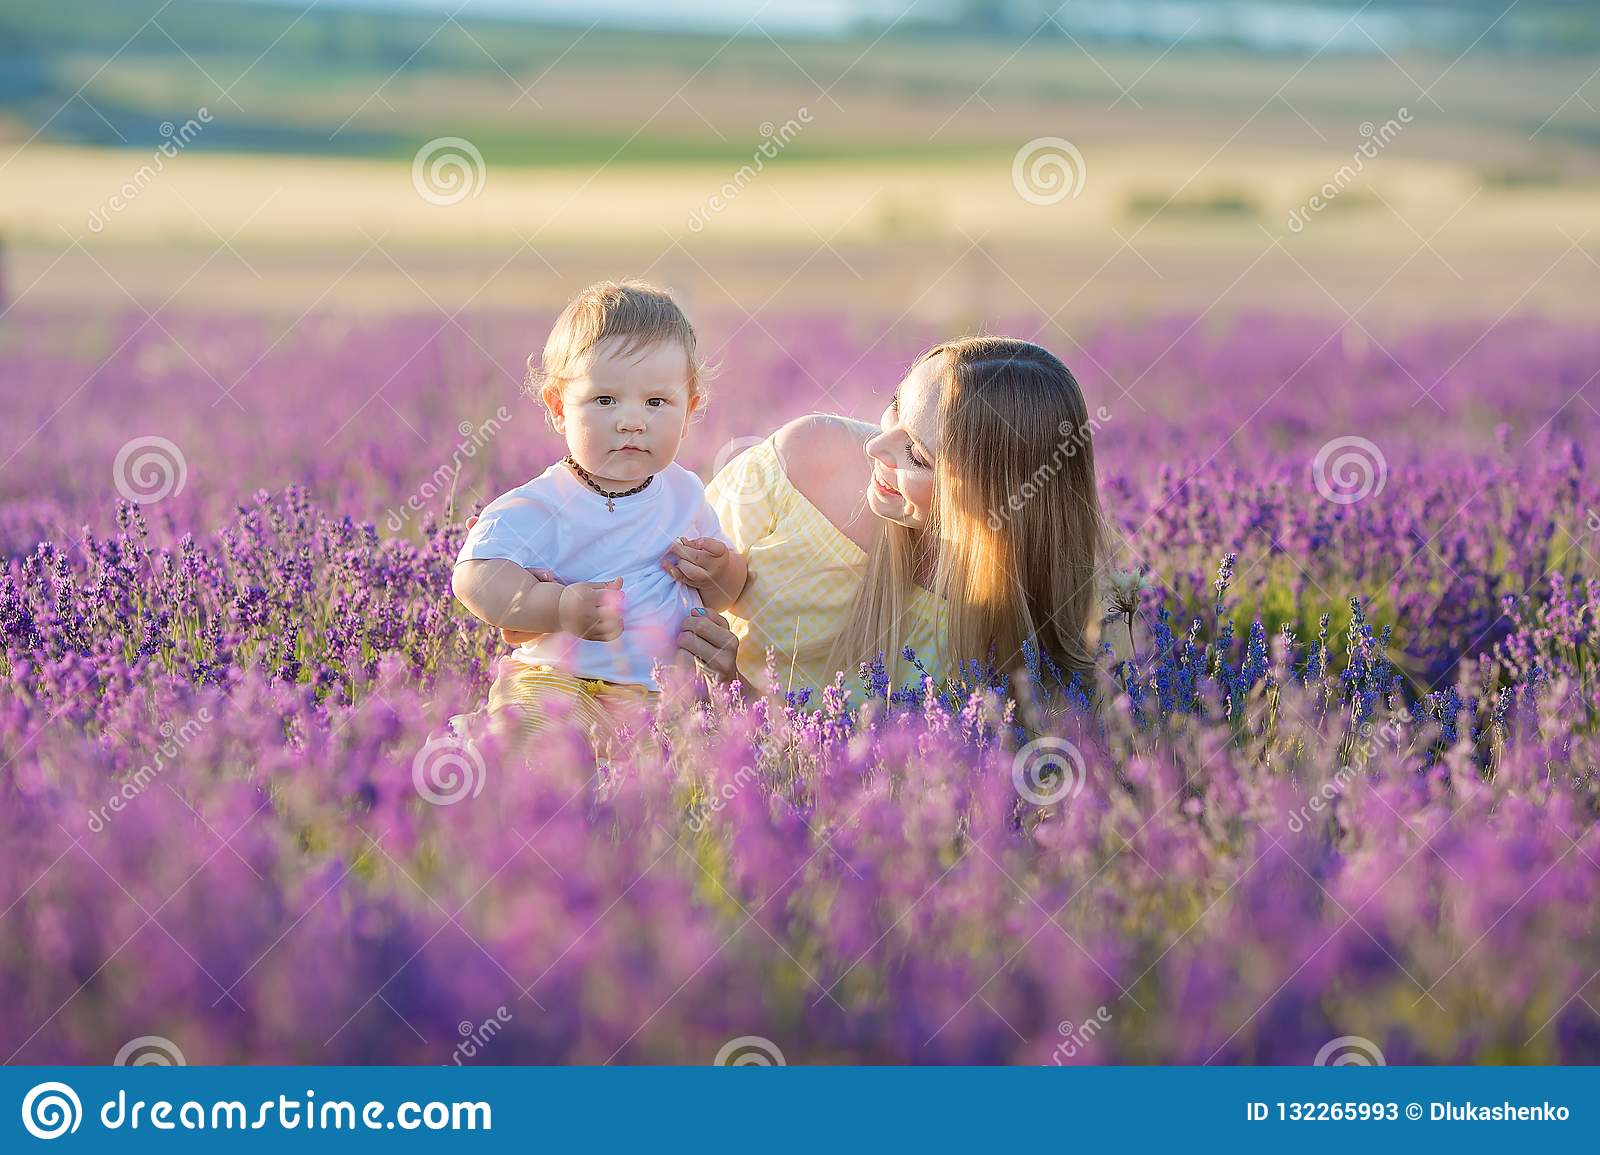 Happy mom with cute son on lavender background. Beautiful woman and boy in meadow field. Lavender landscape with lady and kid